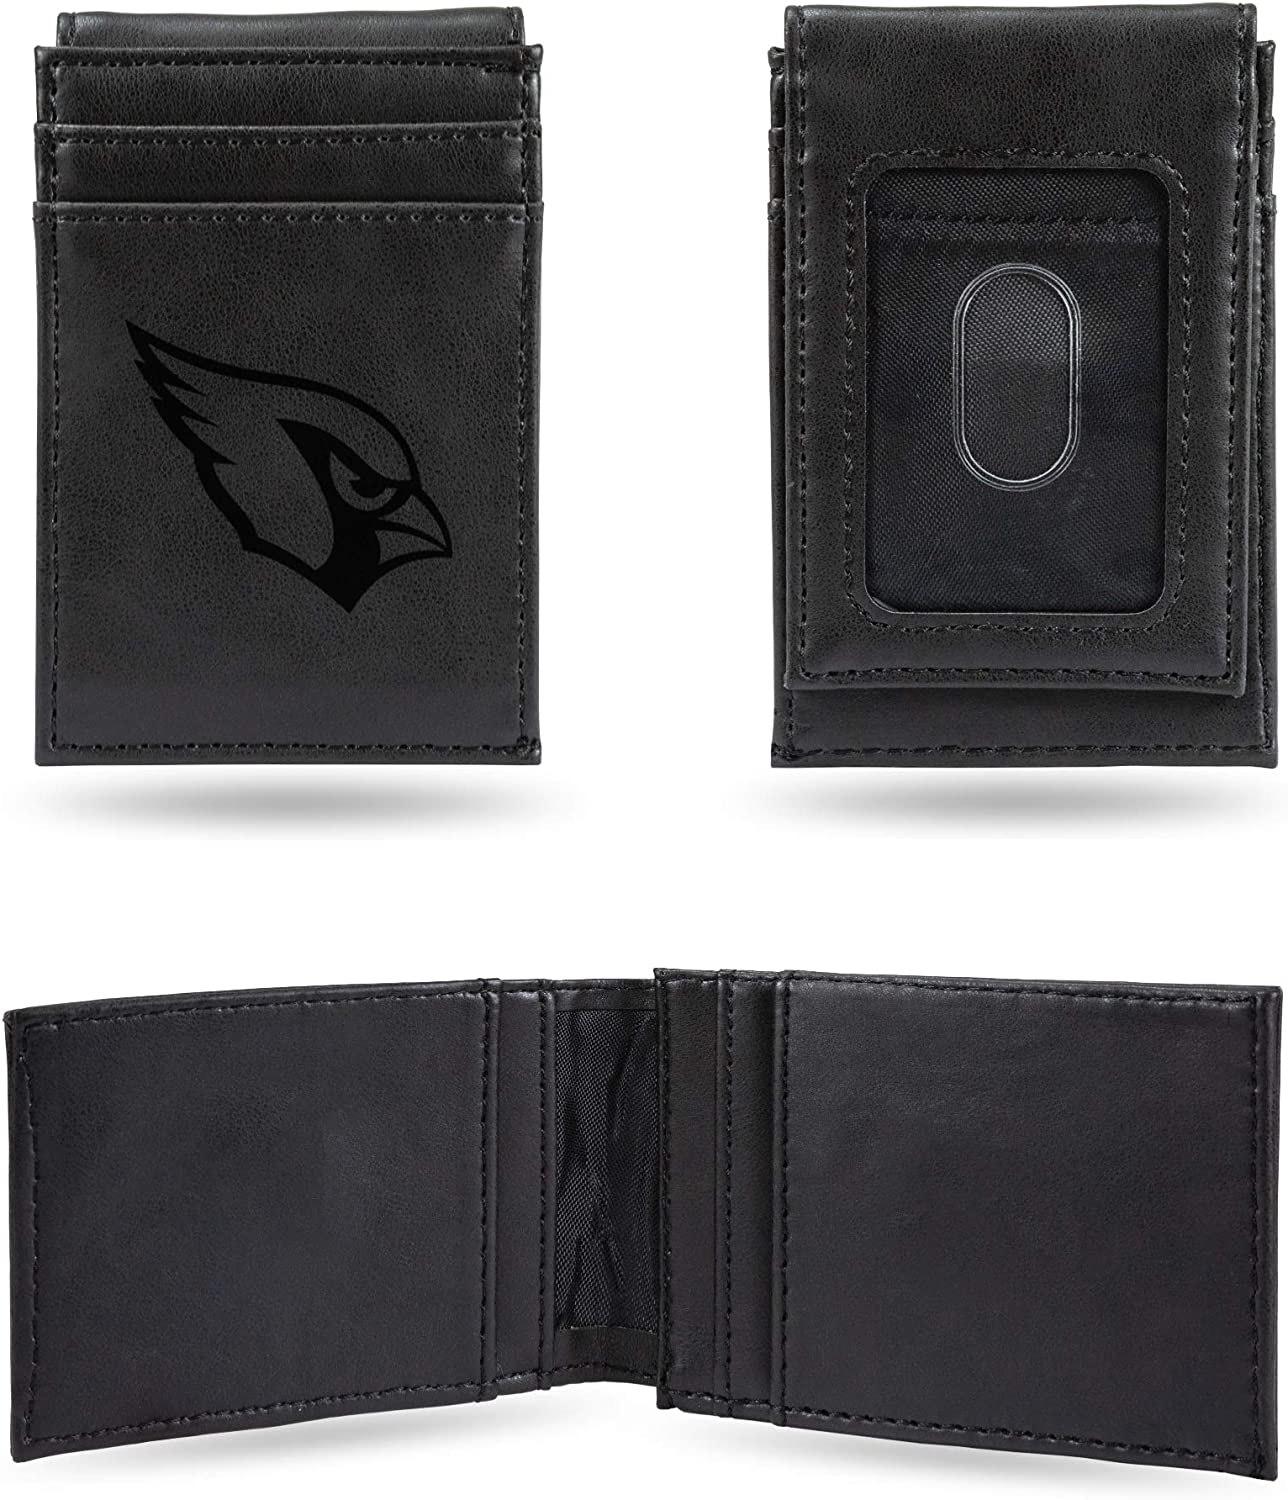 NBA Rico Industries  Laser Engraved Billfold Wallet Cleveland Cavaliers